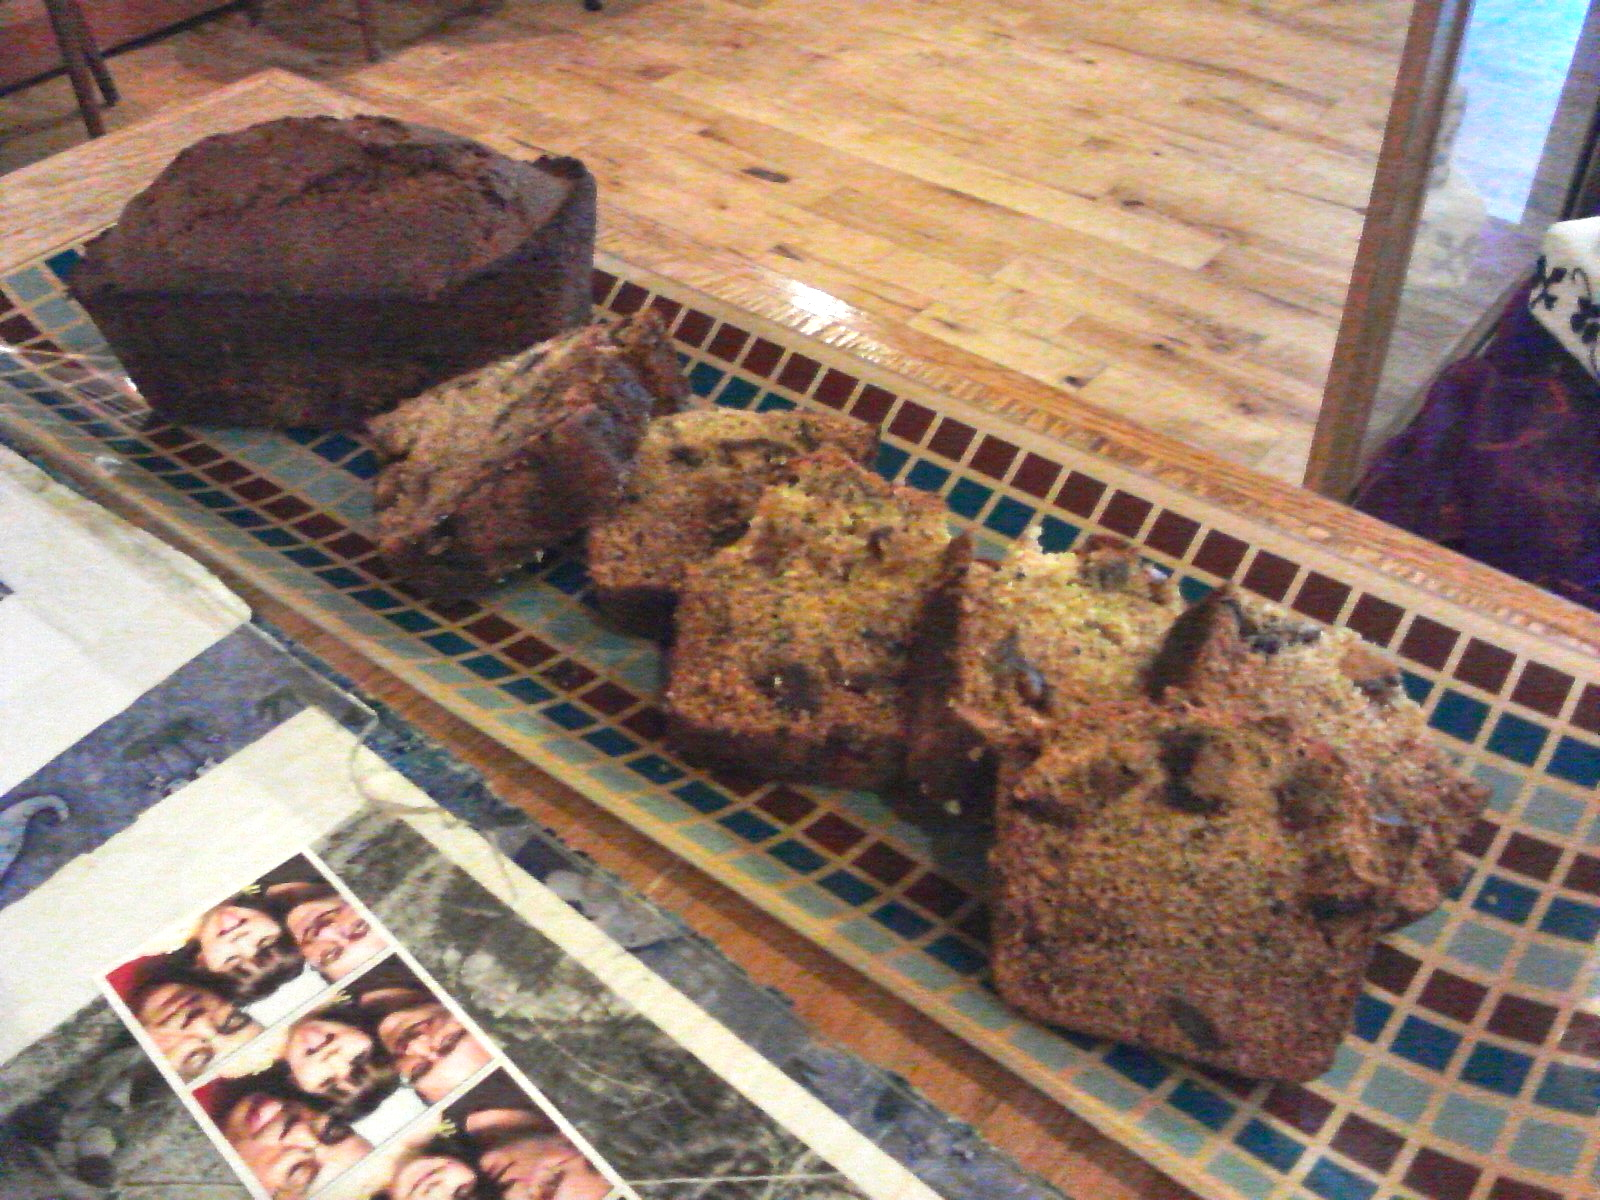 Date Nut Bread Made From Cake Mix